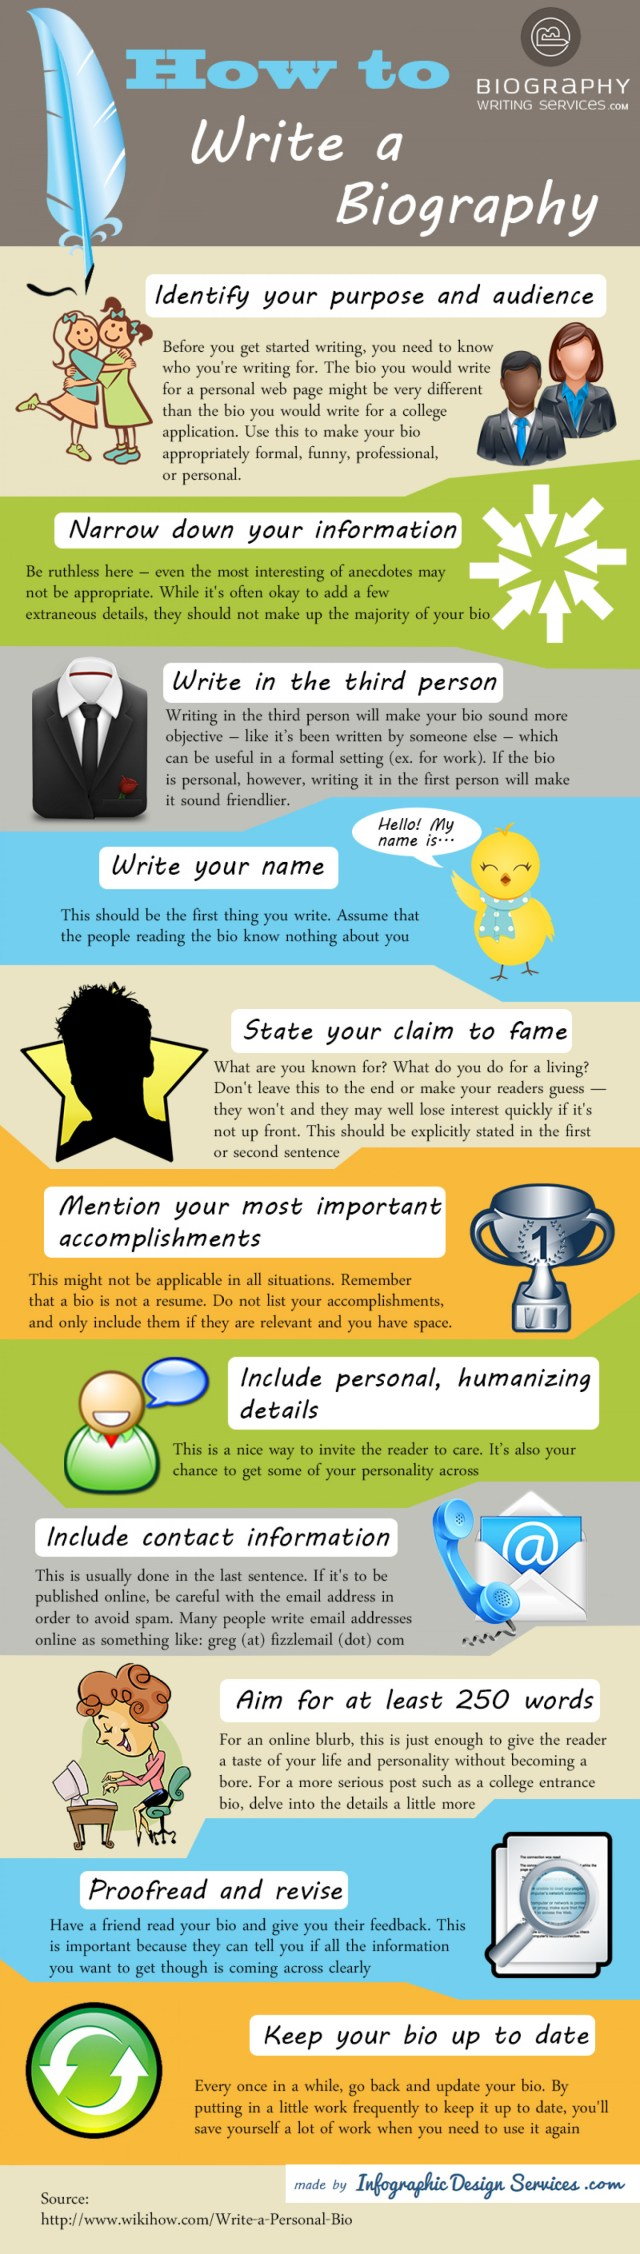 How to Write a Biography  Visual.ly